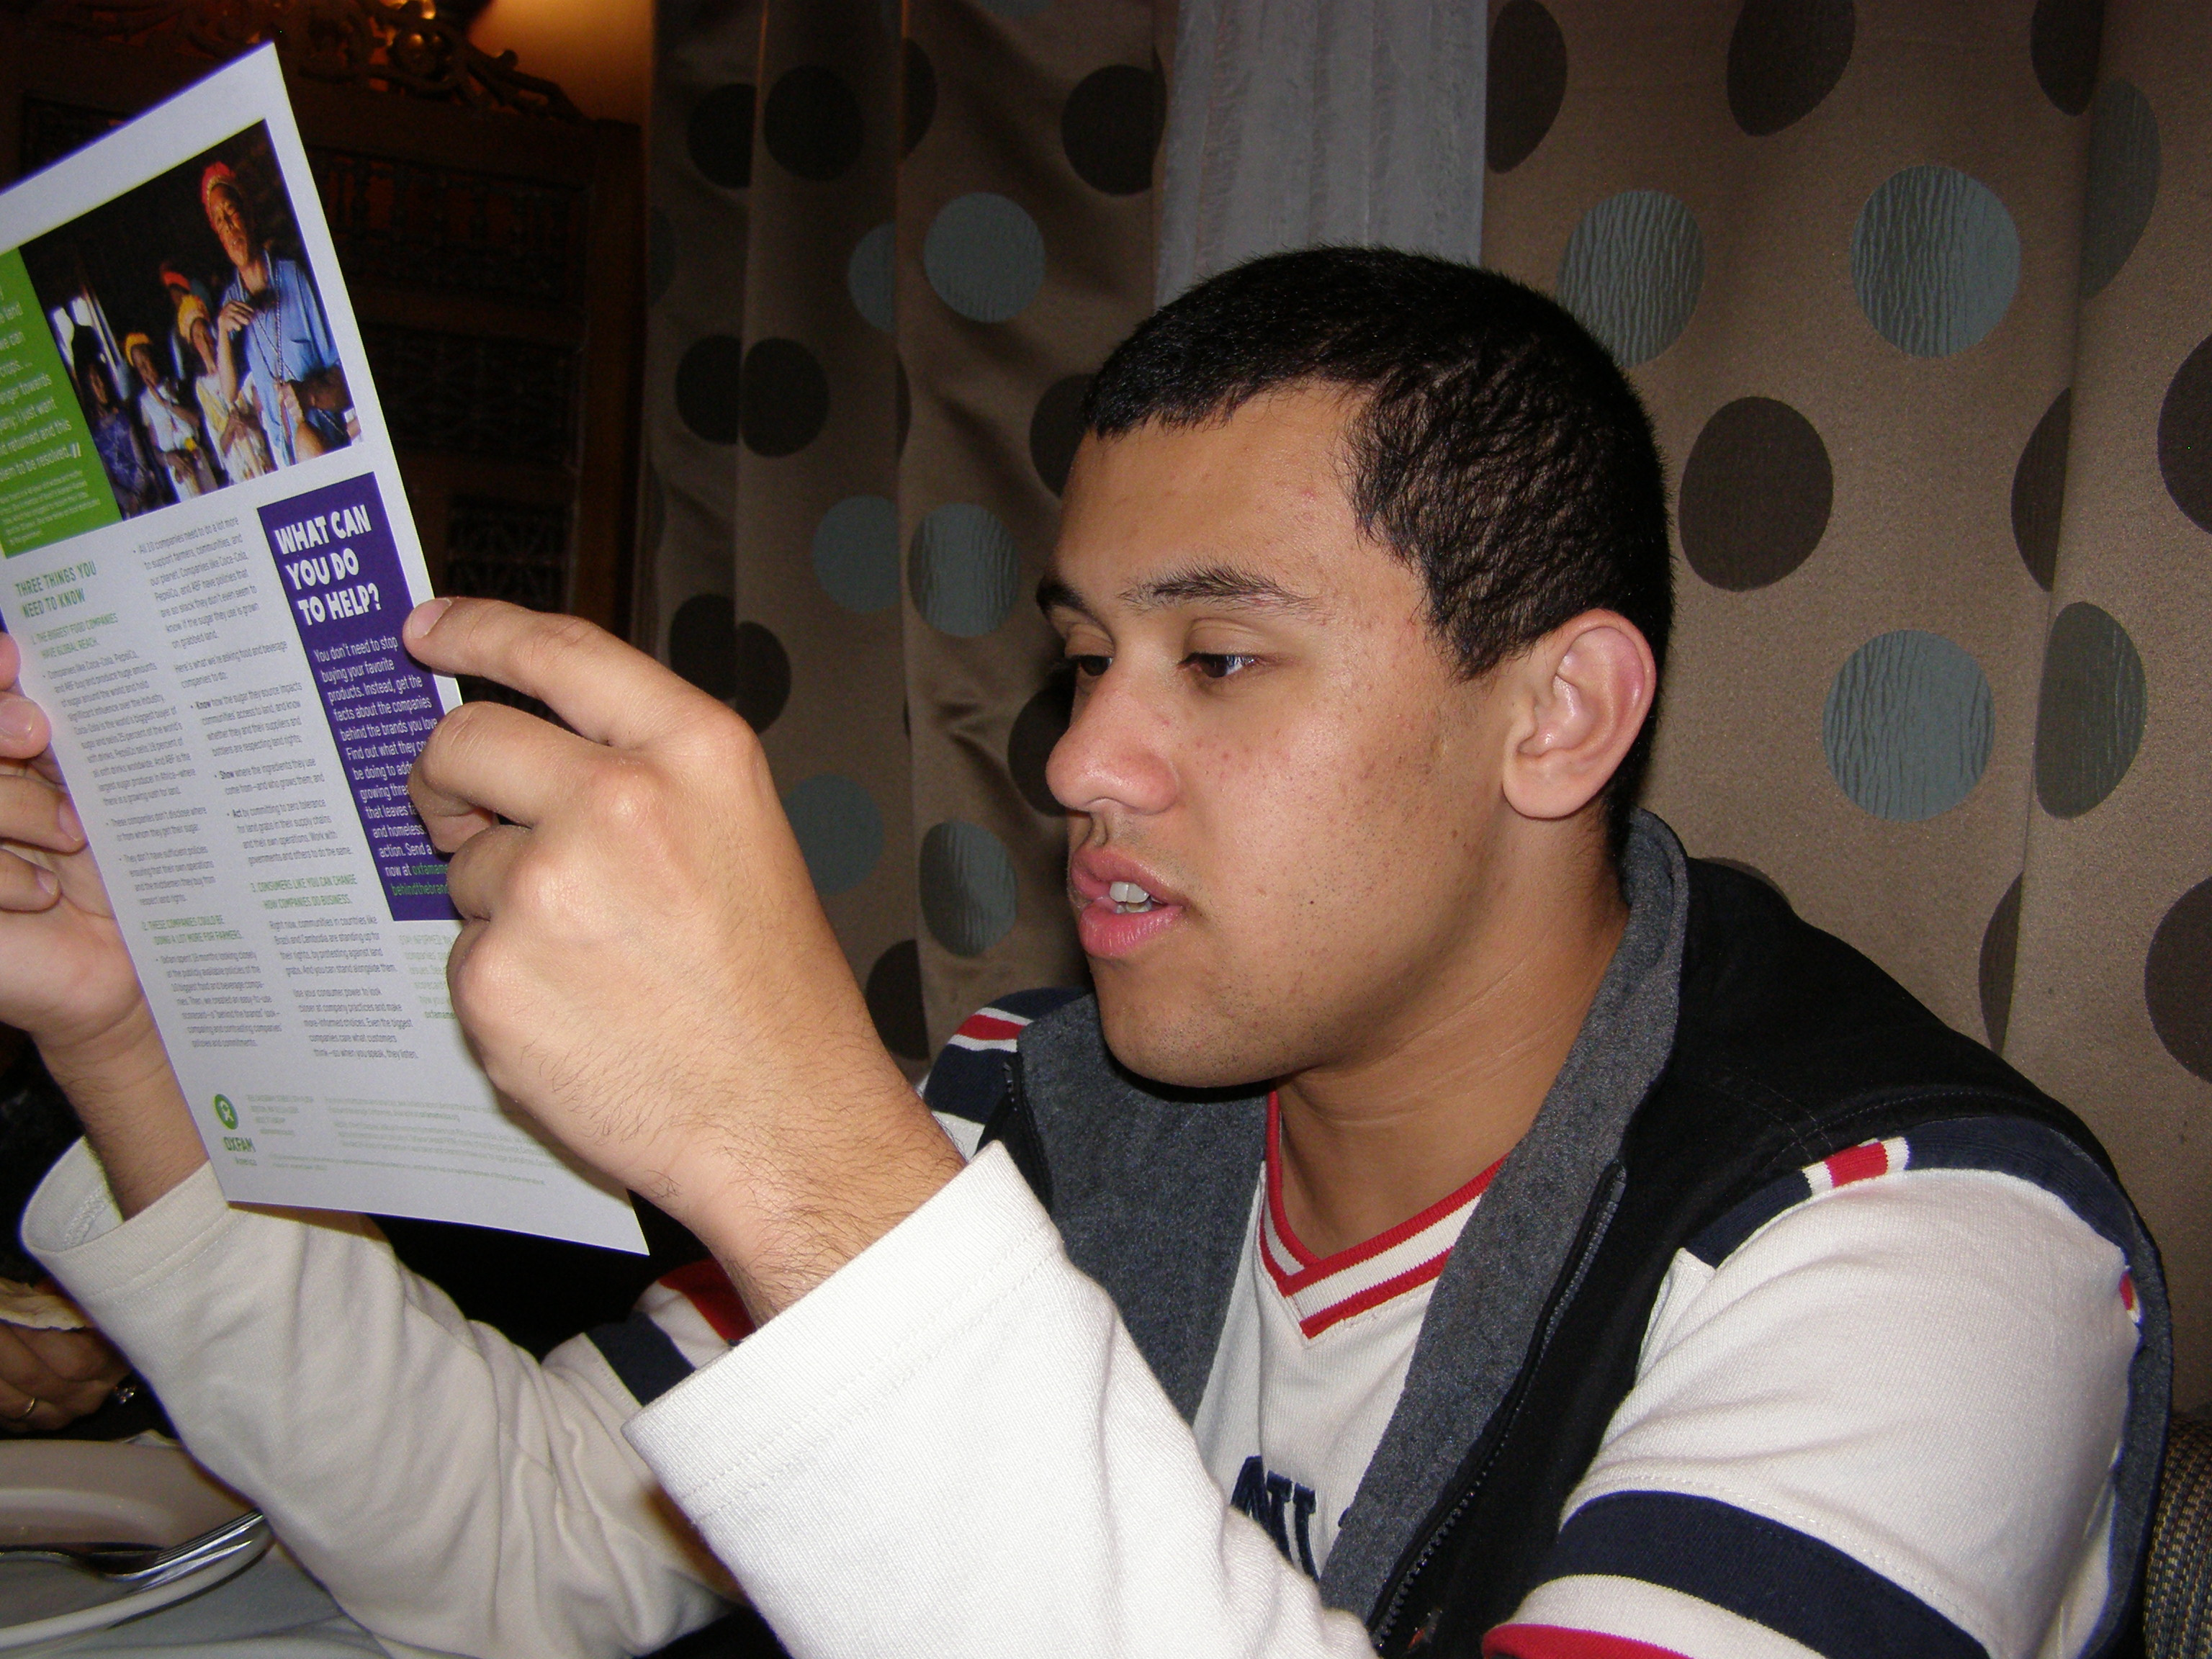 Ari reading World Food Day brochure